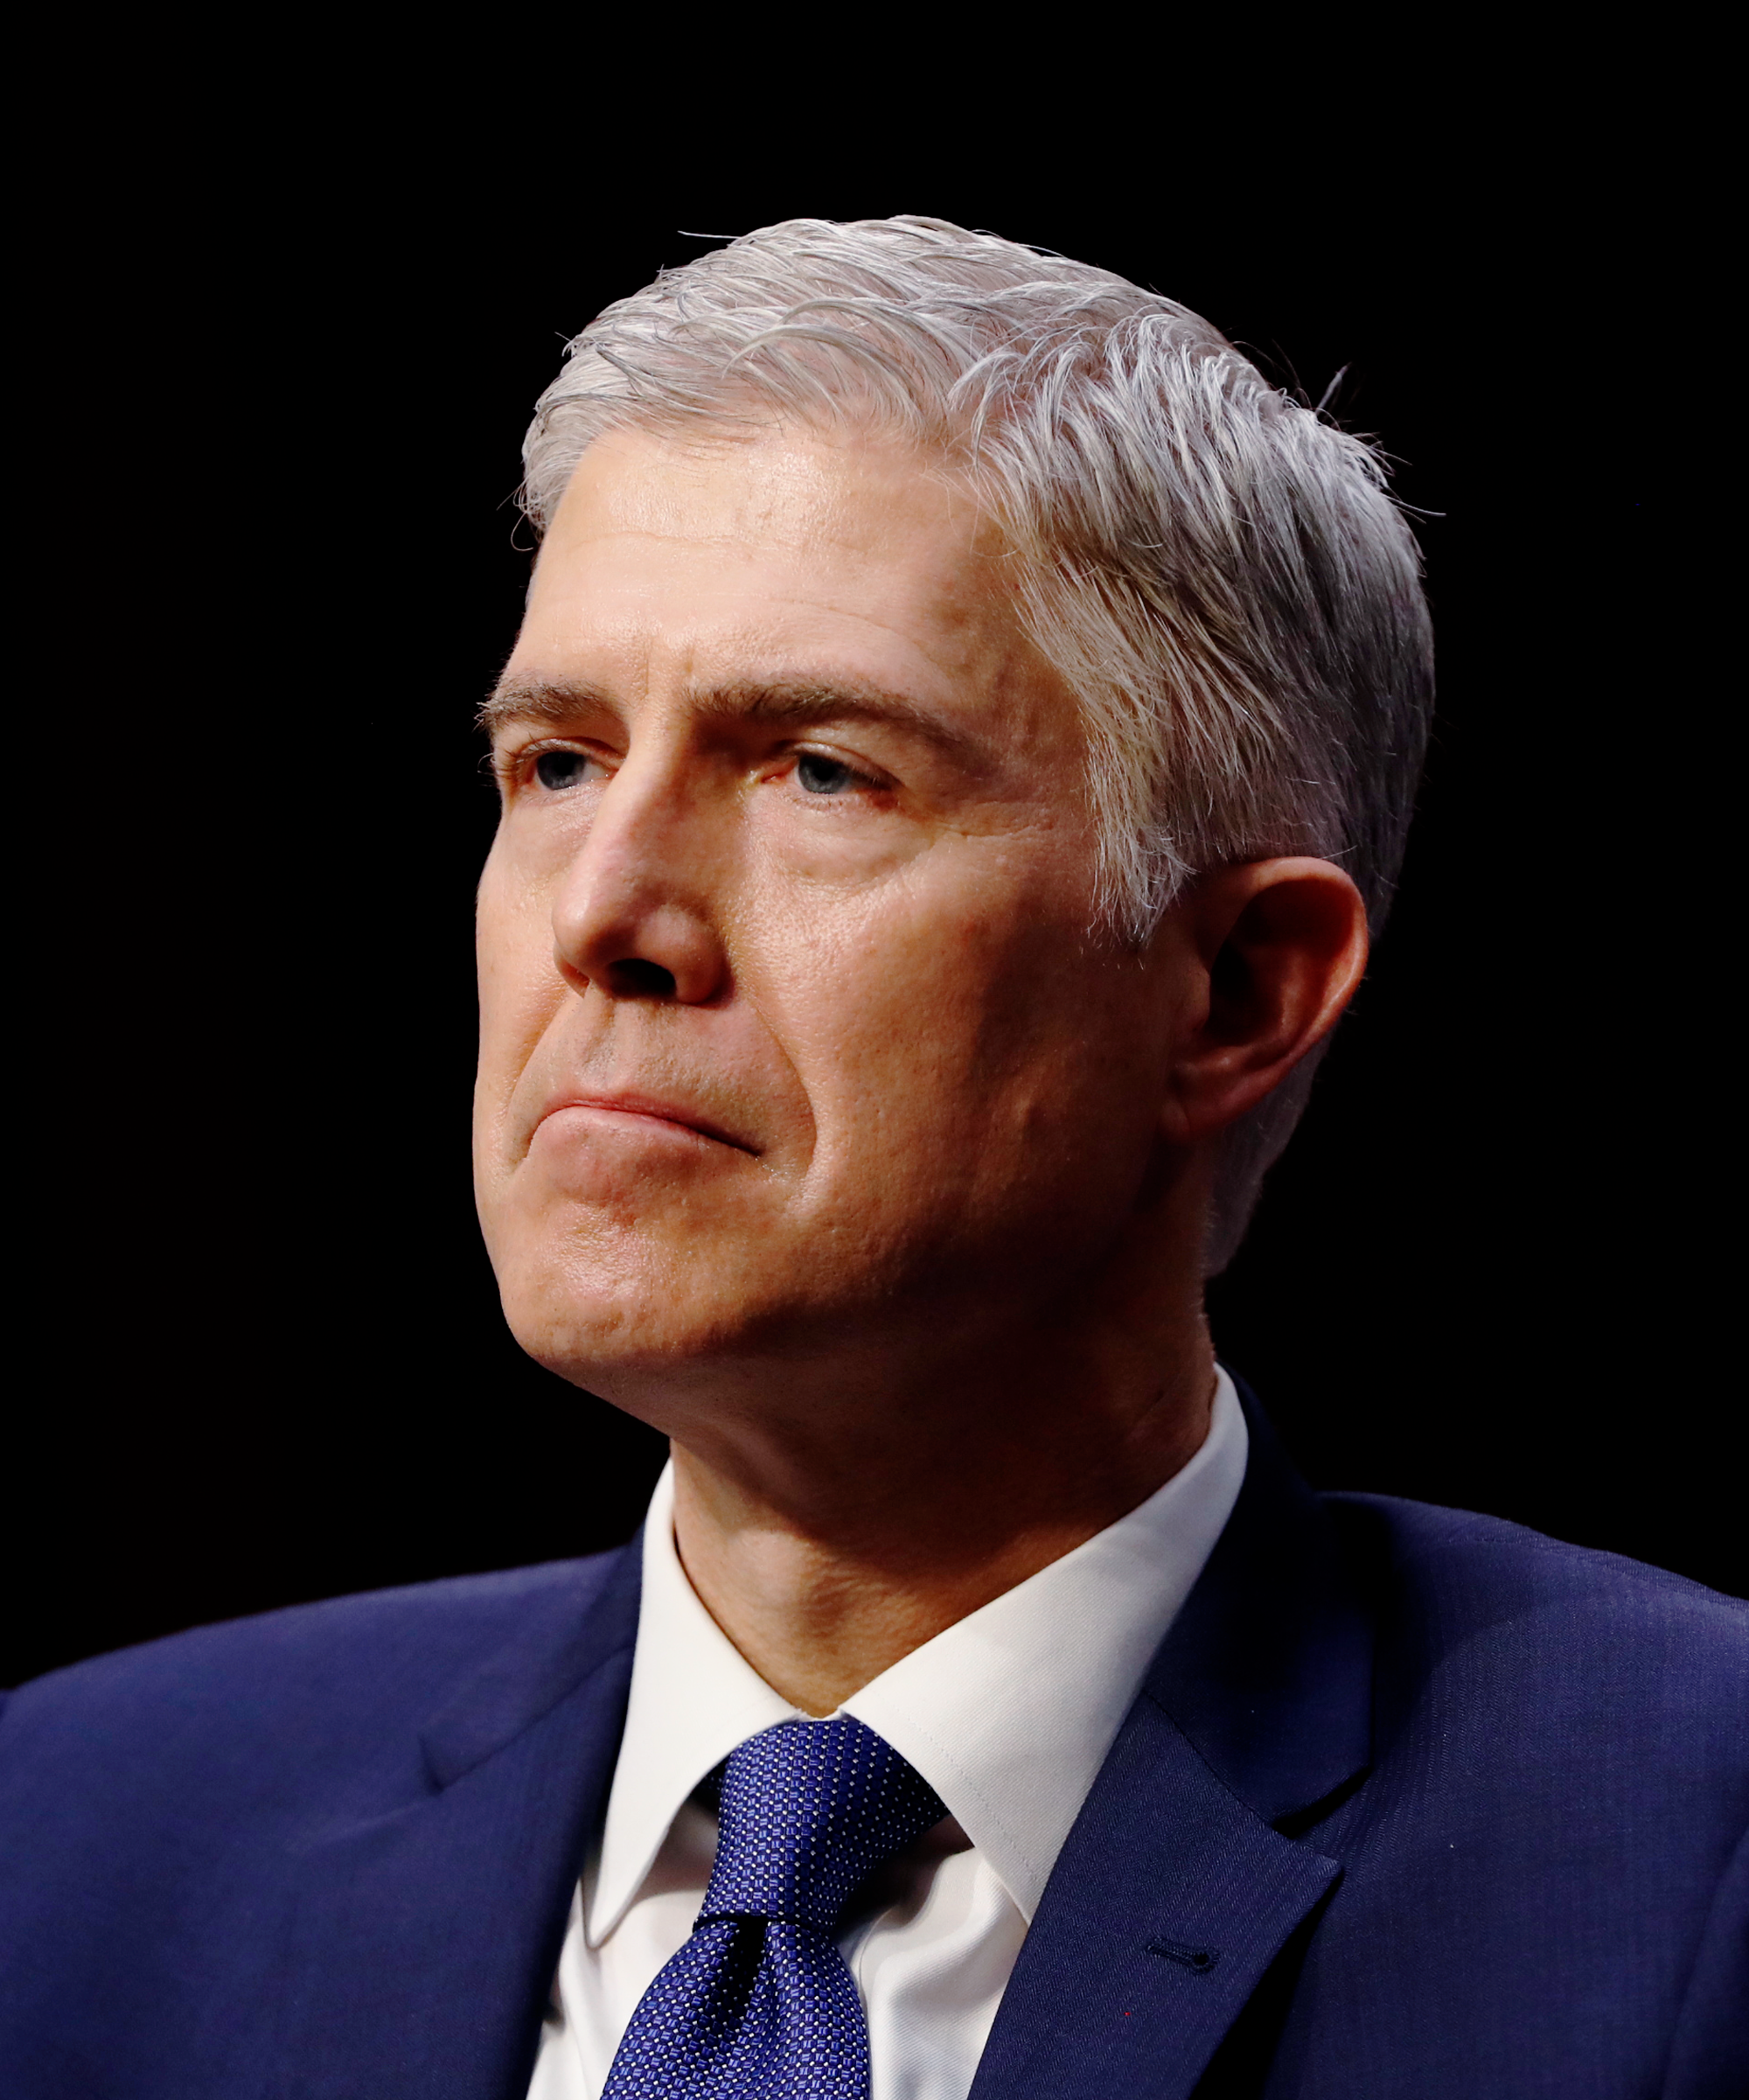 Senate confirms Gorsuch to Supreme Court in historic vote